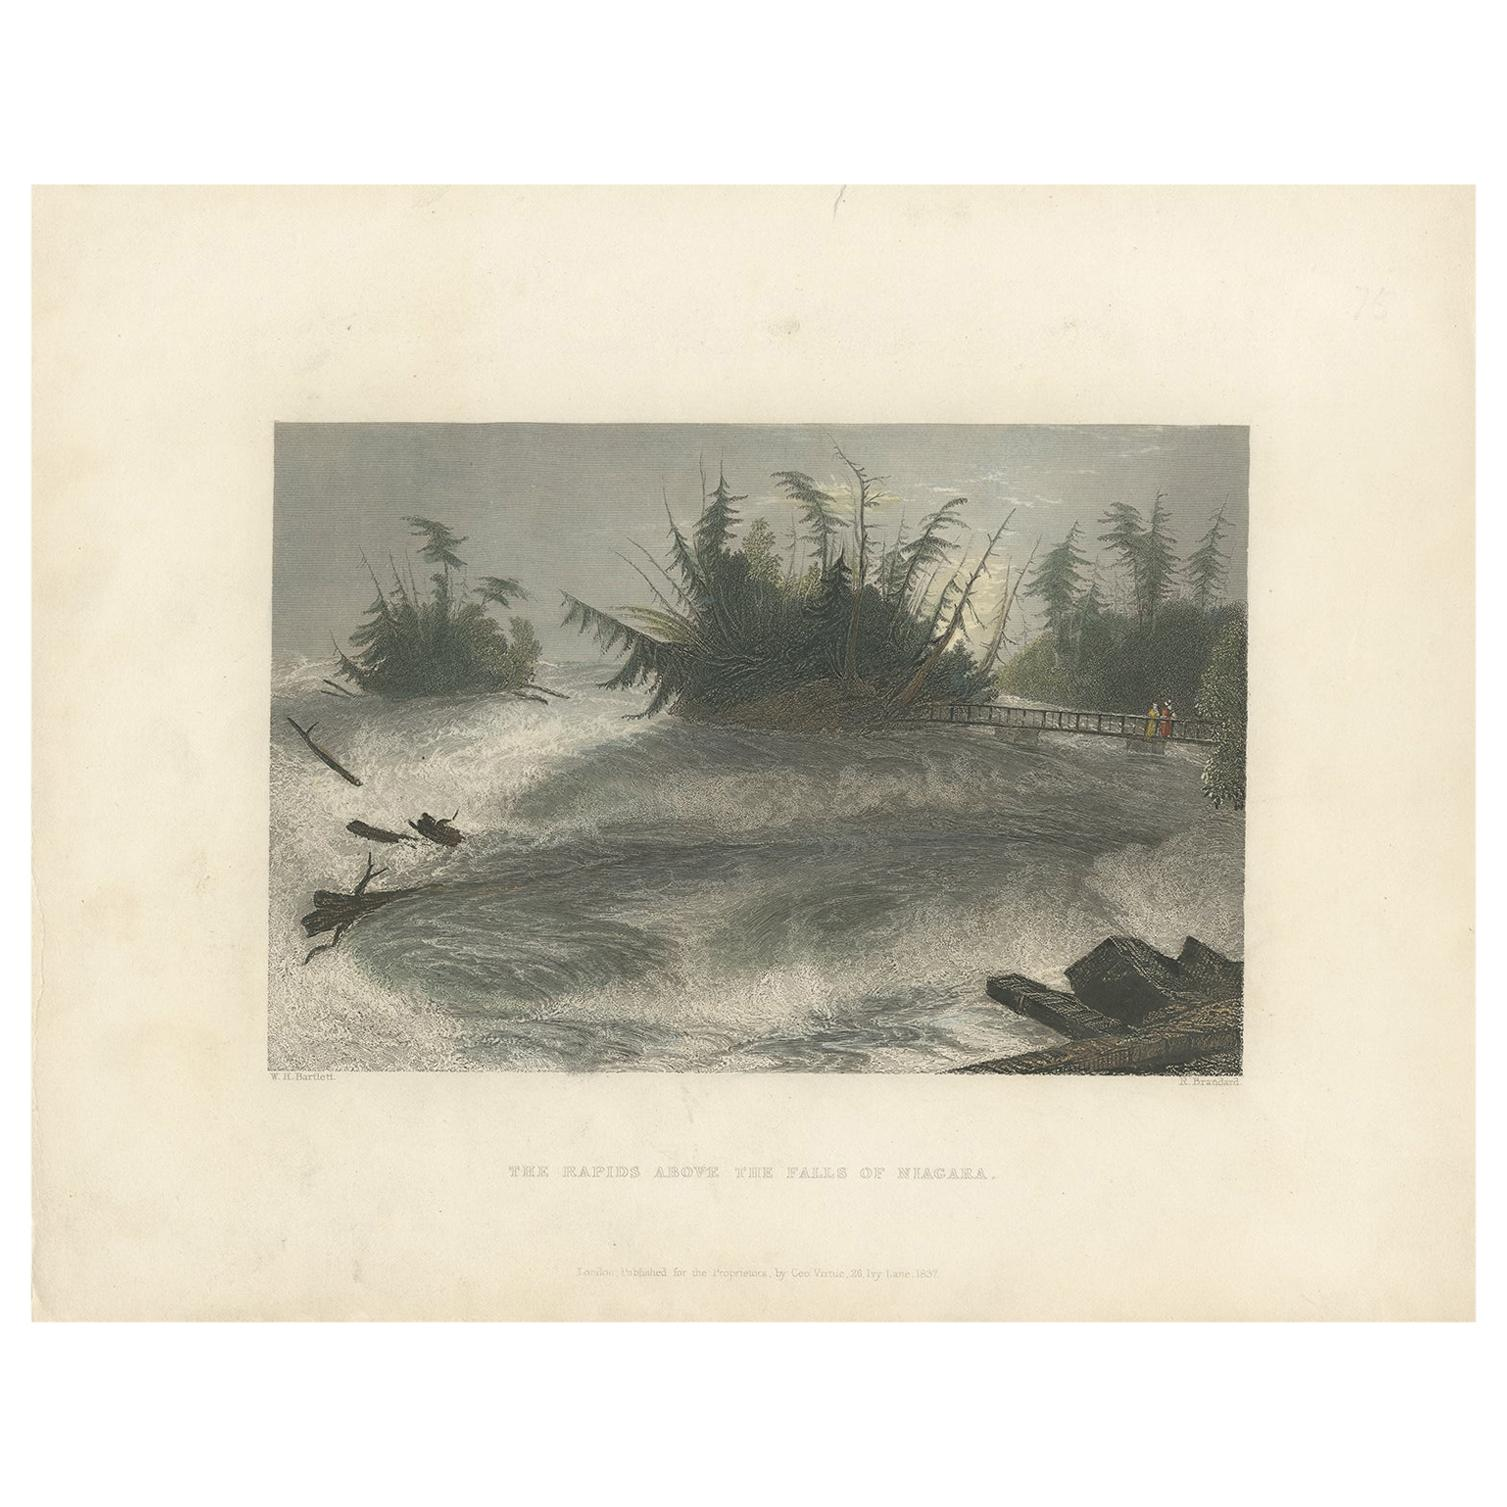 Antique Print of the Rapids of the Niagara Falls by Brandard, 1837